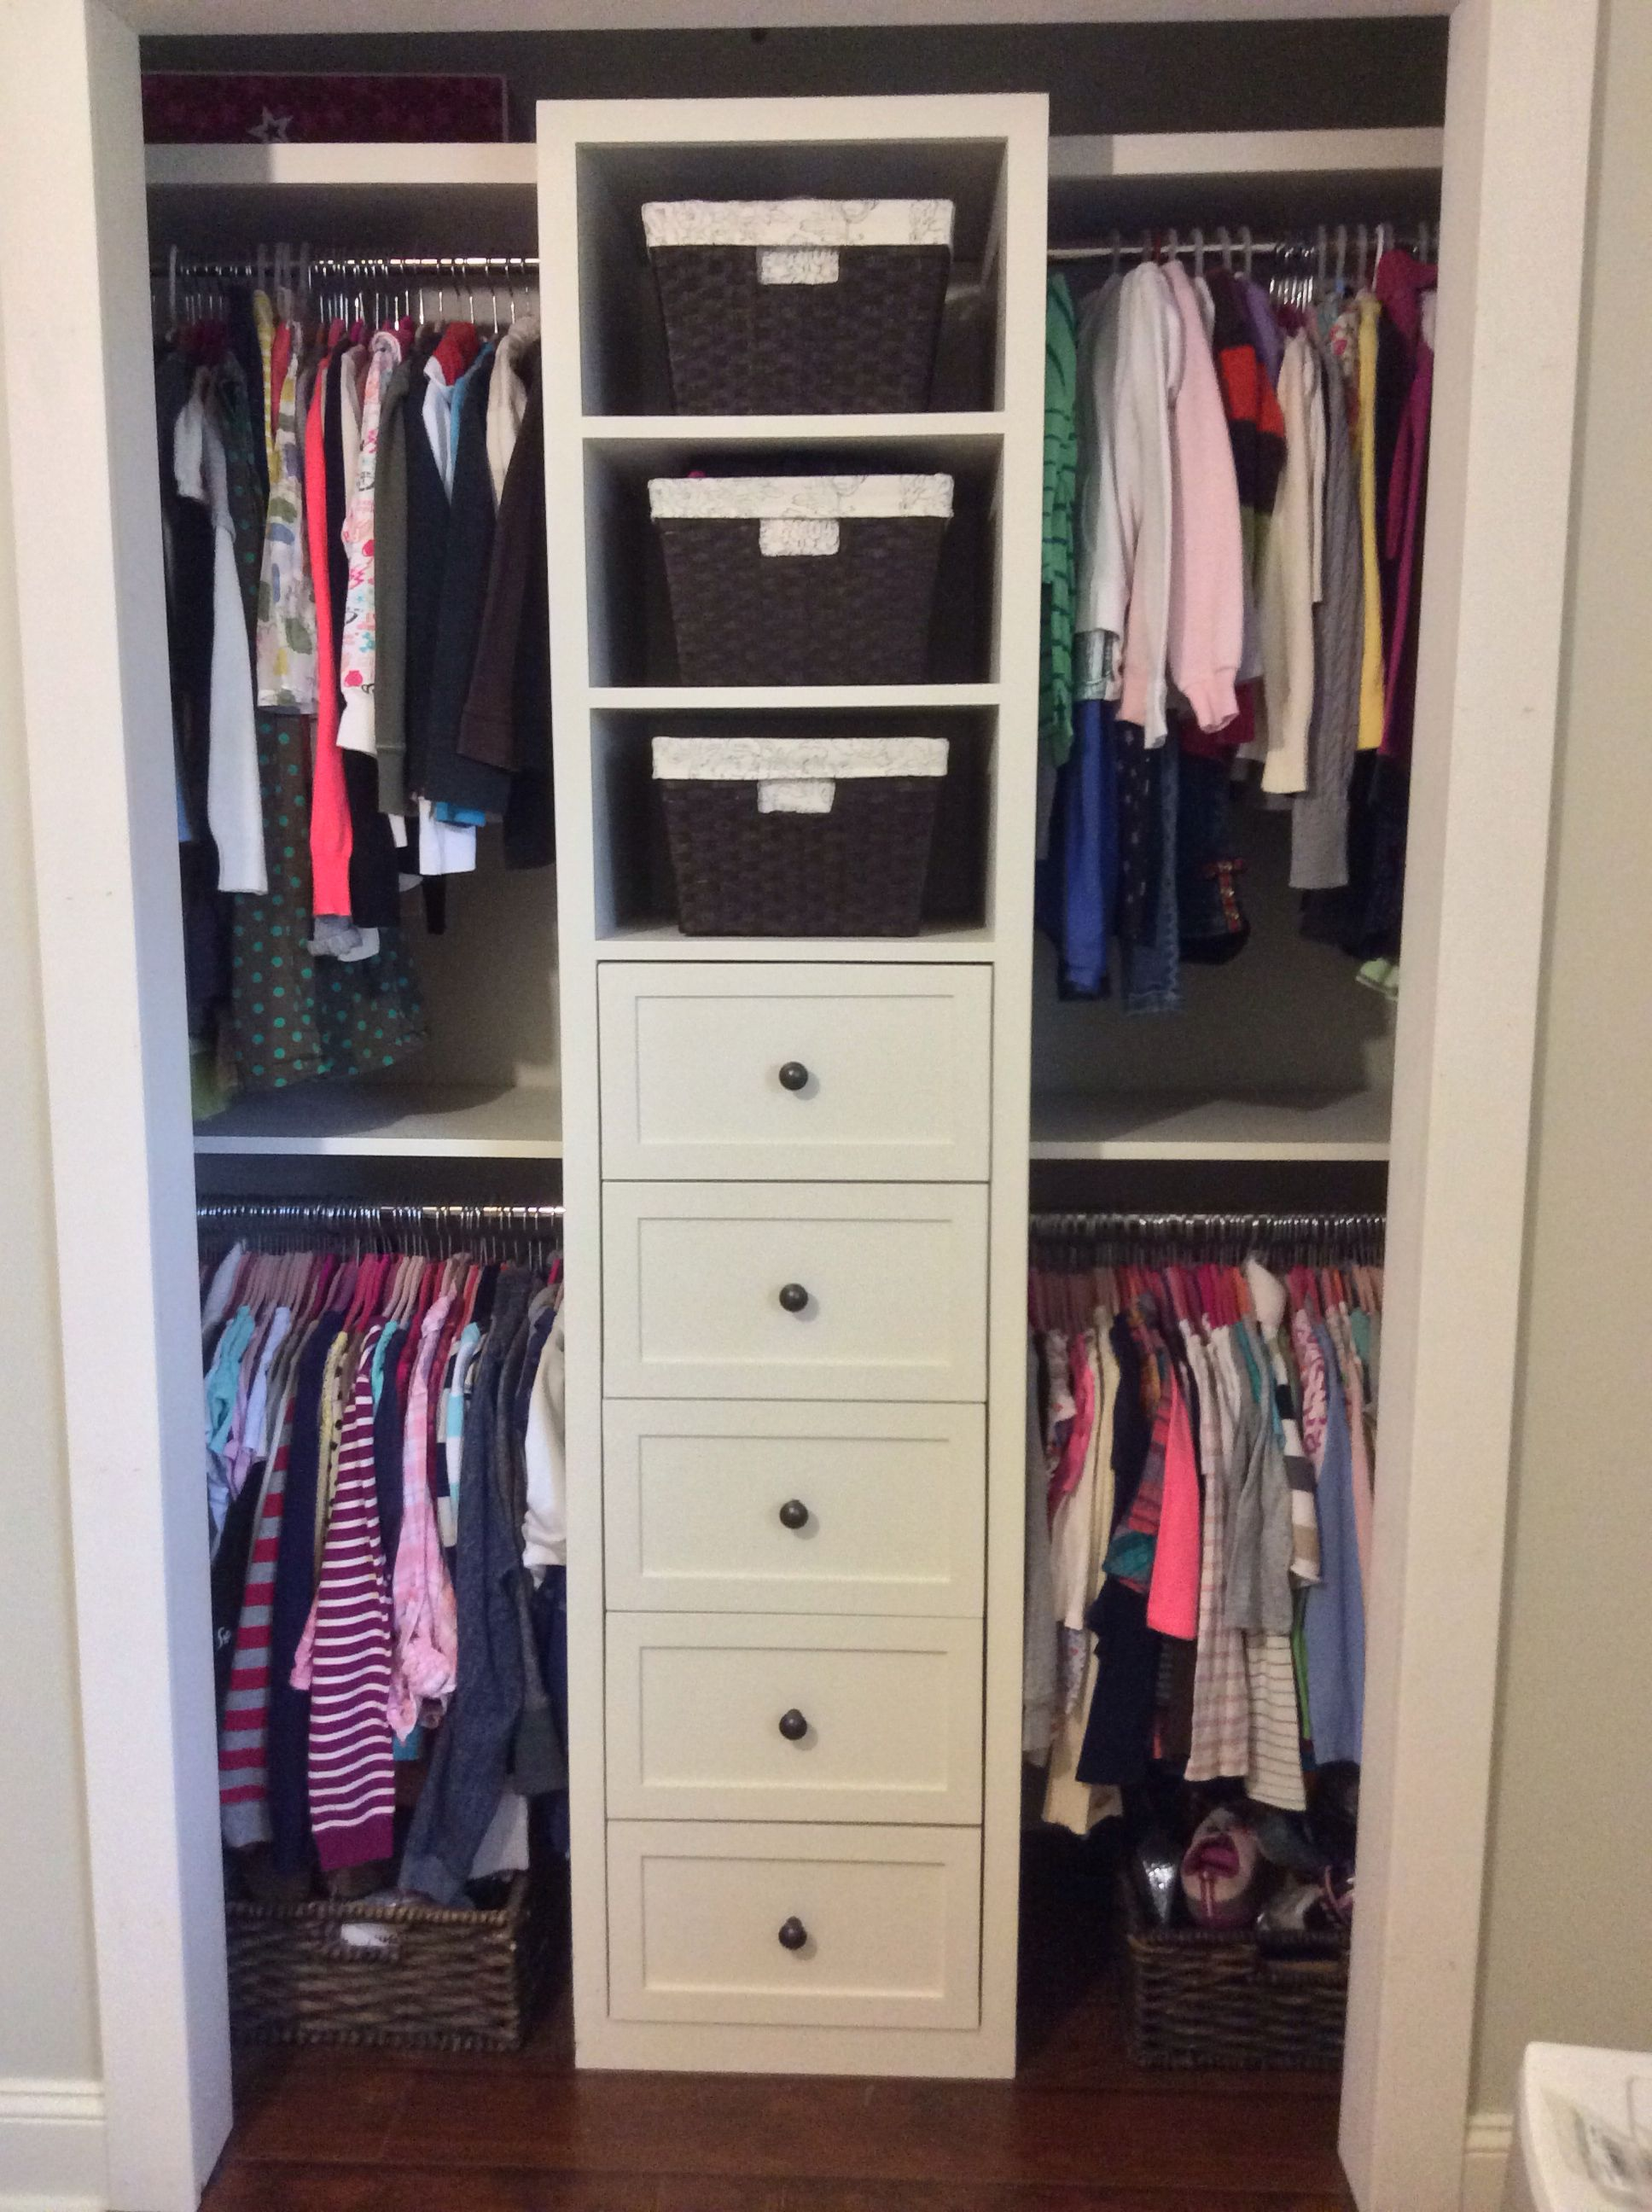 Small Shared Girls Closet Built In Redo Closet Small Bedroom Bedroom Organization Closet Closet Remodel